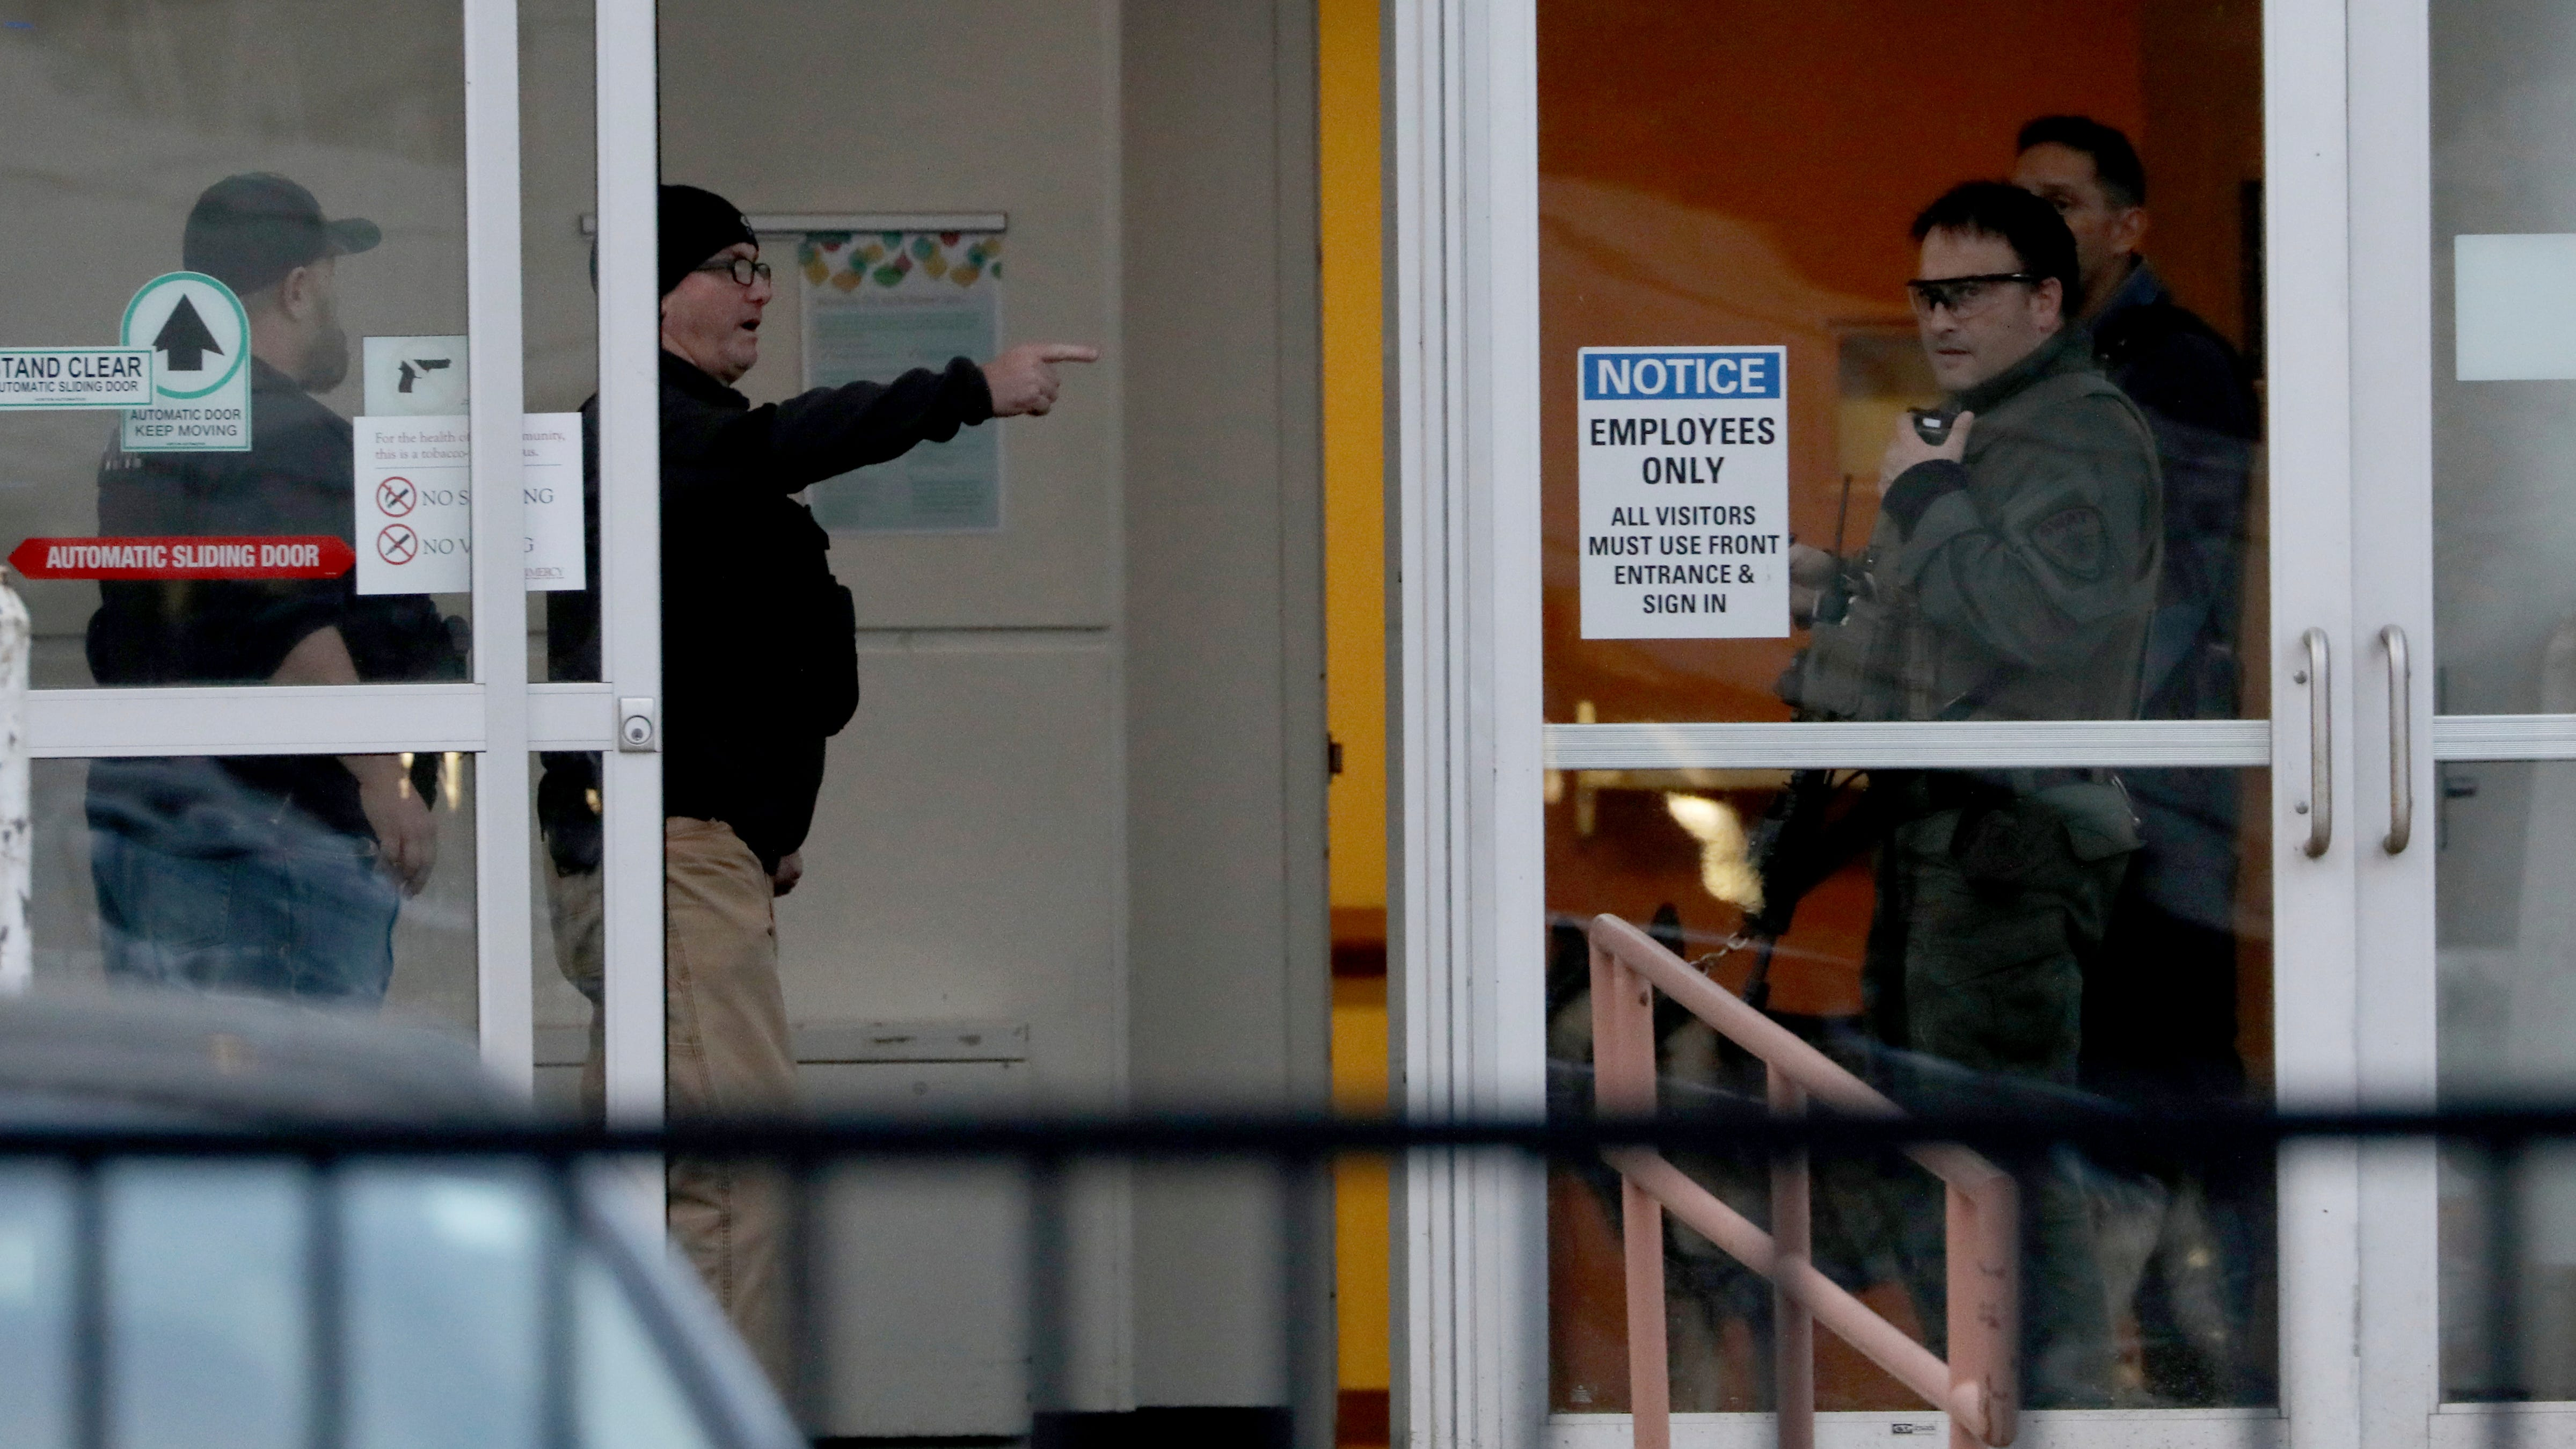 Law enforcement officers including Chicago SWAT work an entrance at Mercy Hospital on Nov. 19, 2018, in Chicago.